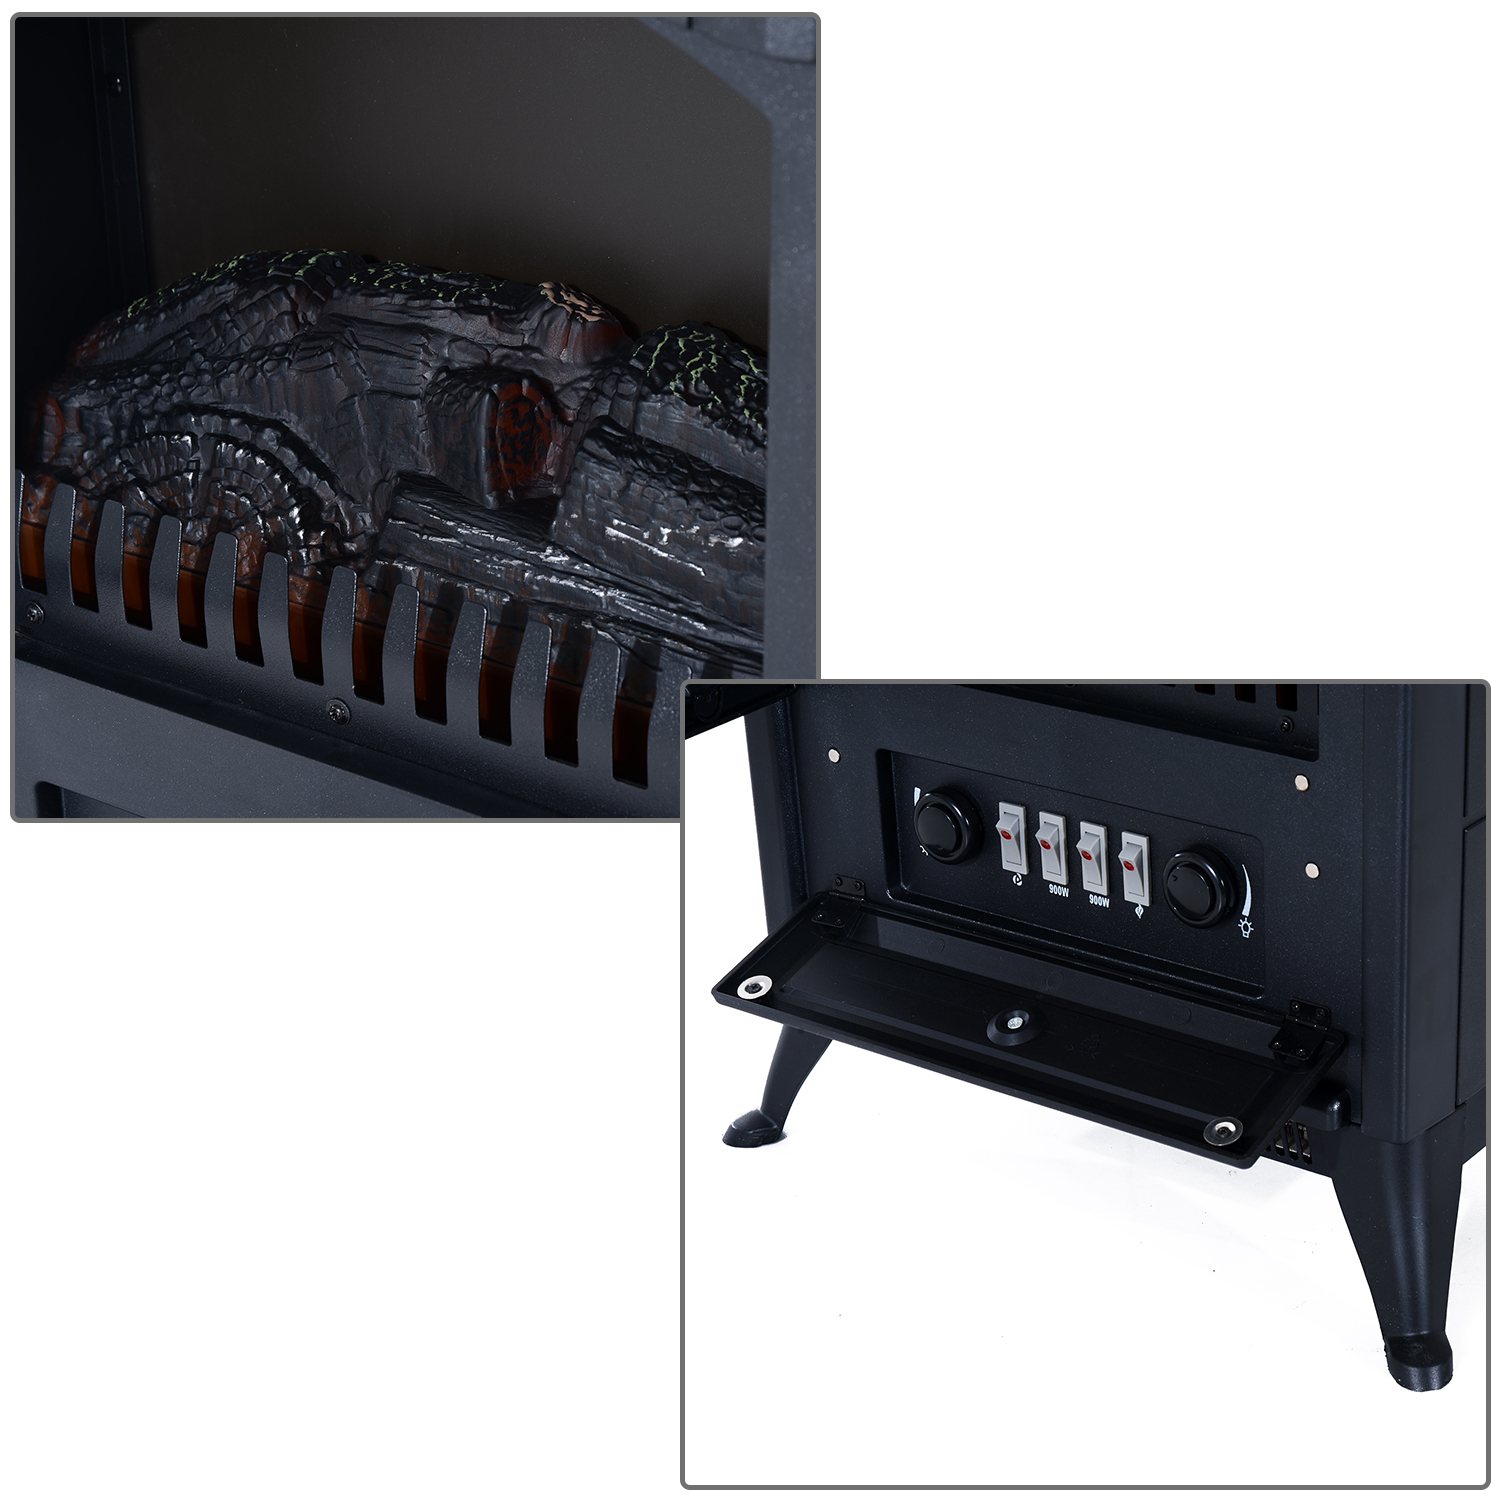 HOMCOM-750-1500W-Portable-Electric-Fireplace-Stove-Heater-Adjustable-LED-Flames thumbnail 7